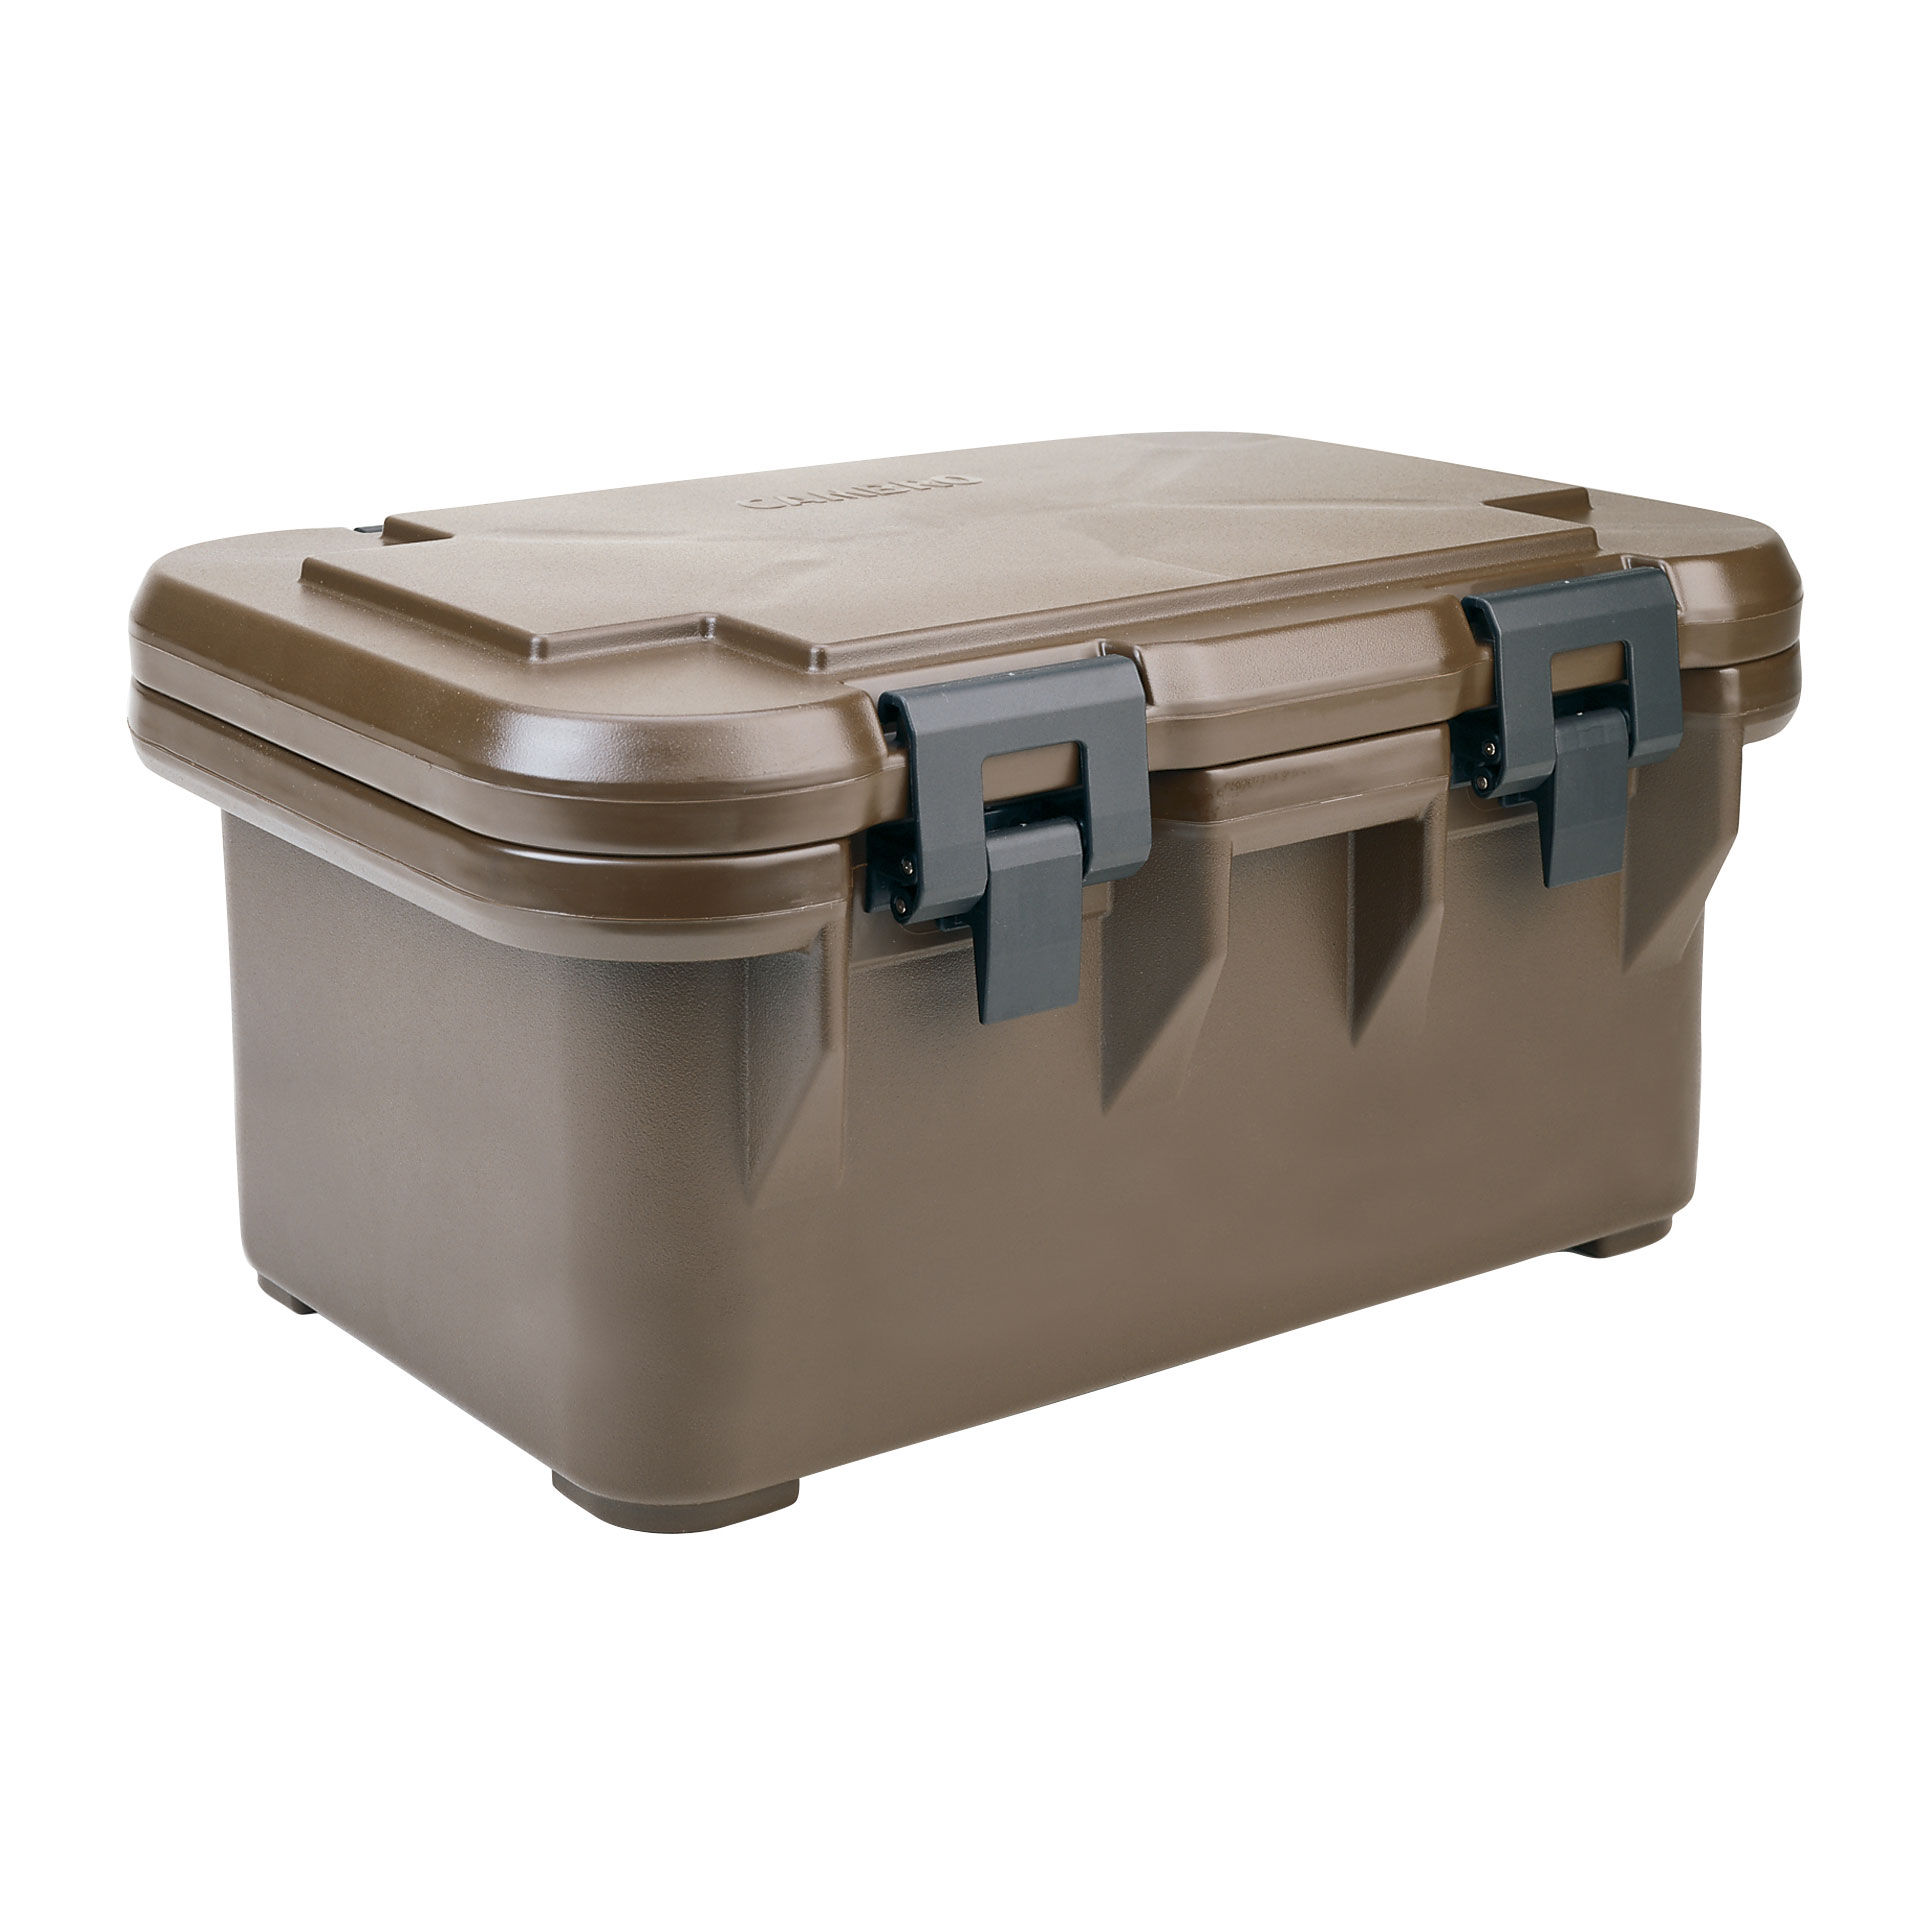 Cambro UPCS180131 food pan carriers